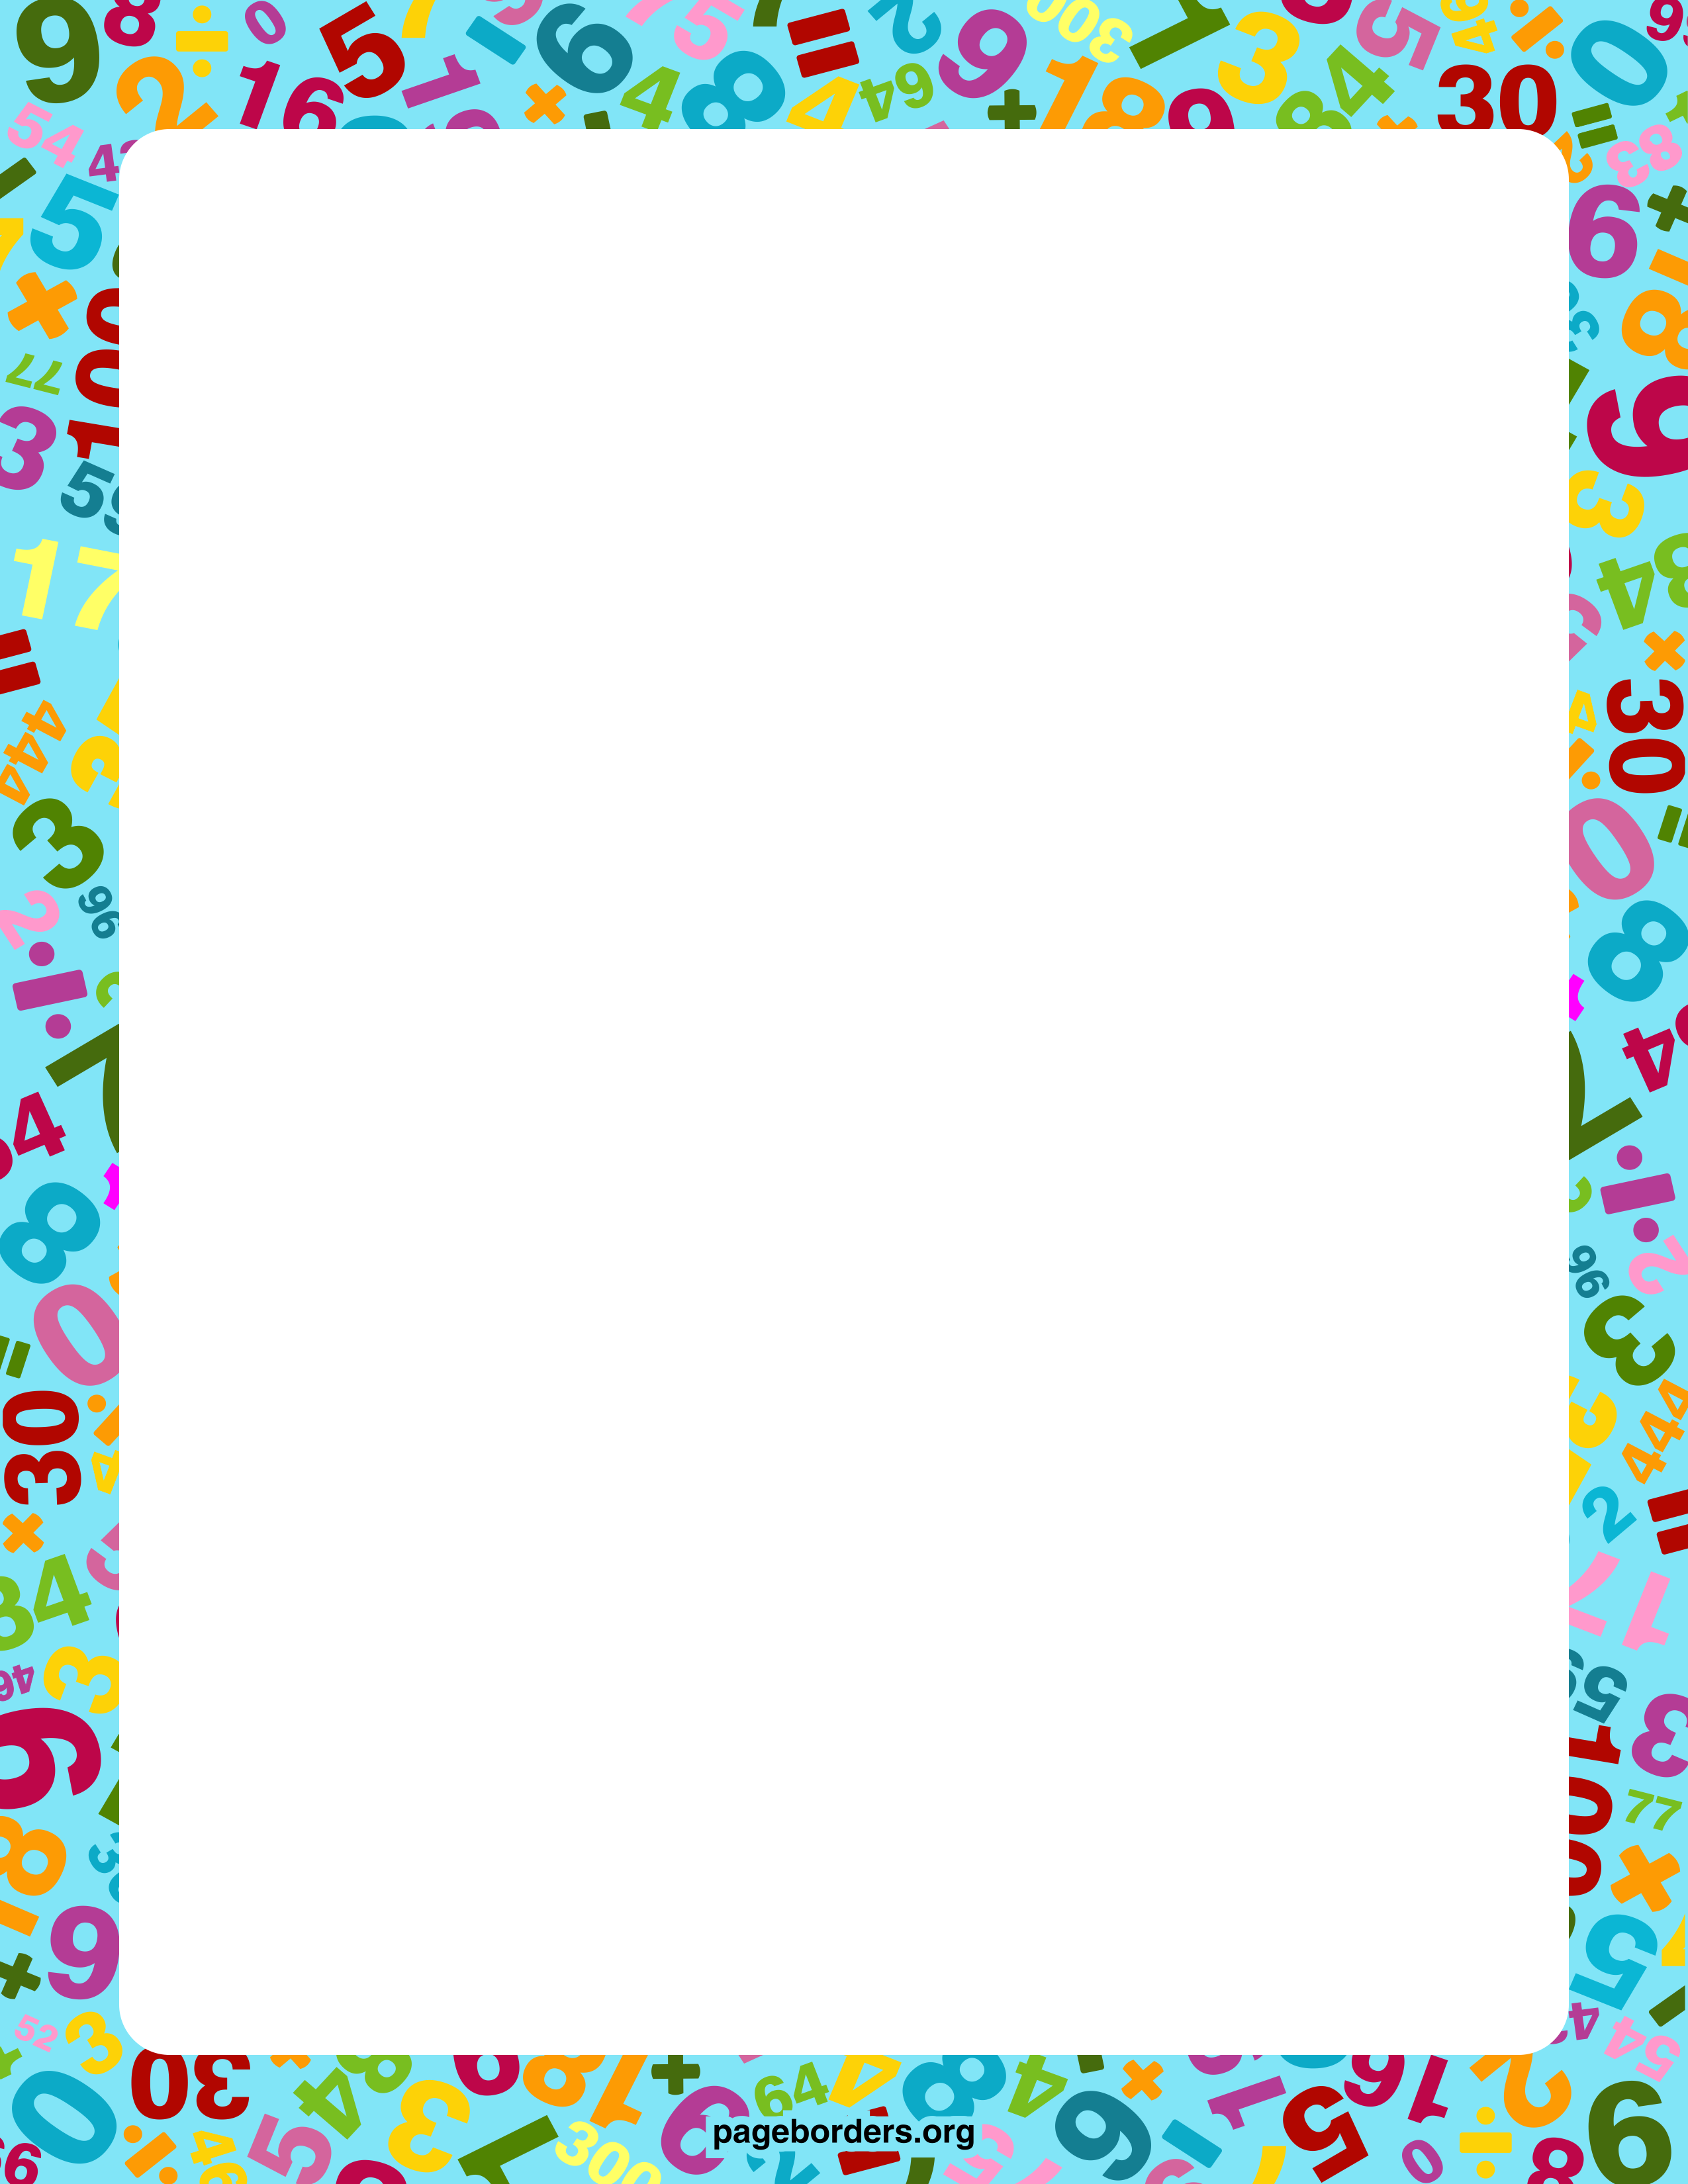 Borders With Numbers Png & Free Borders With Numbers.png